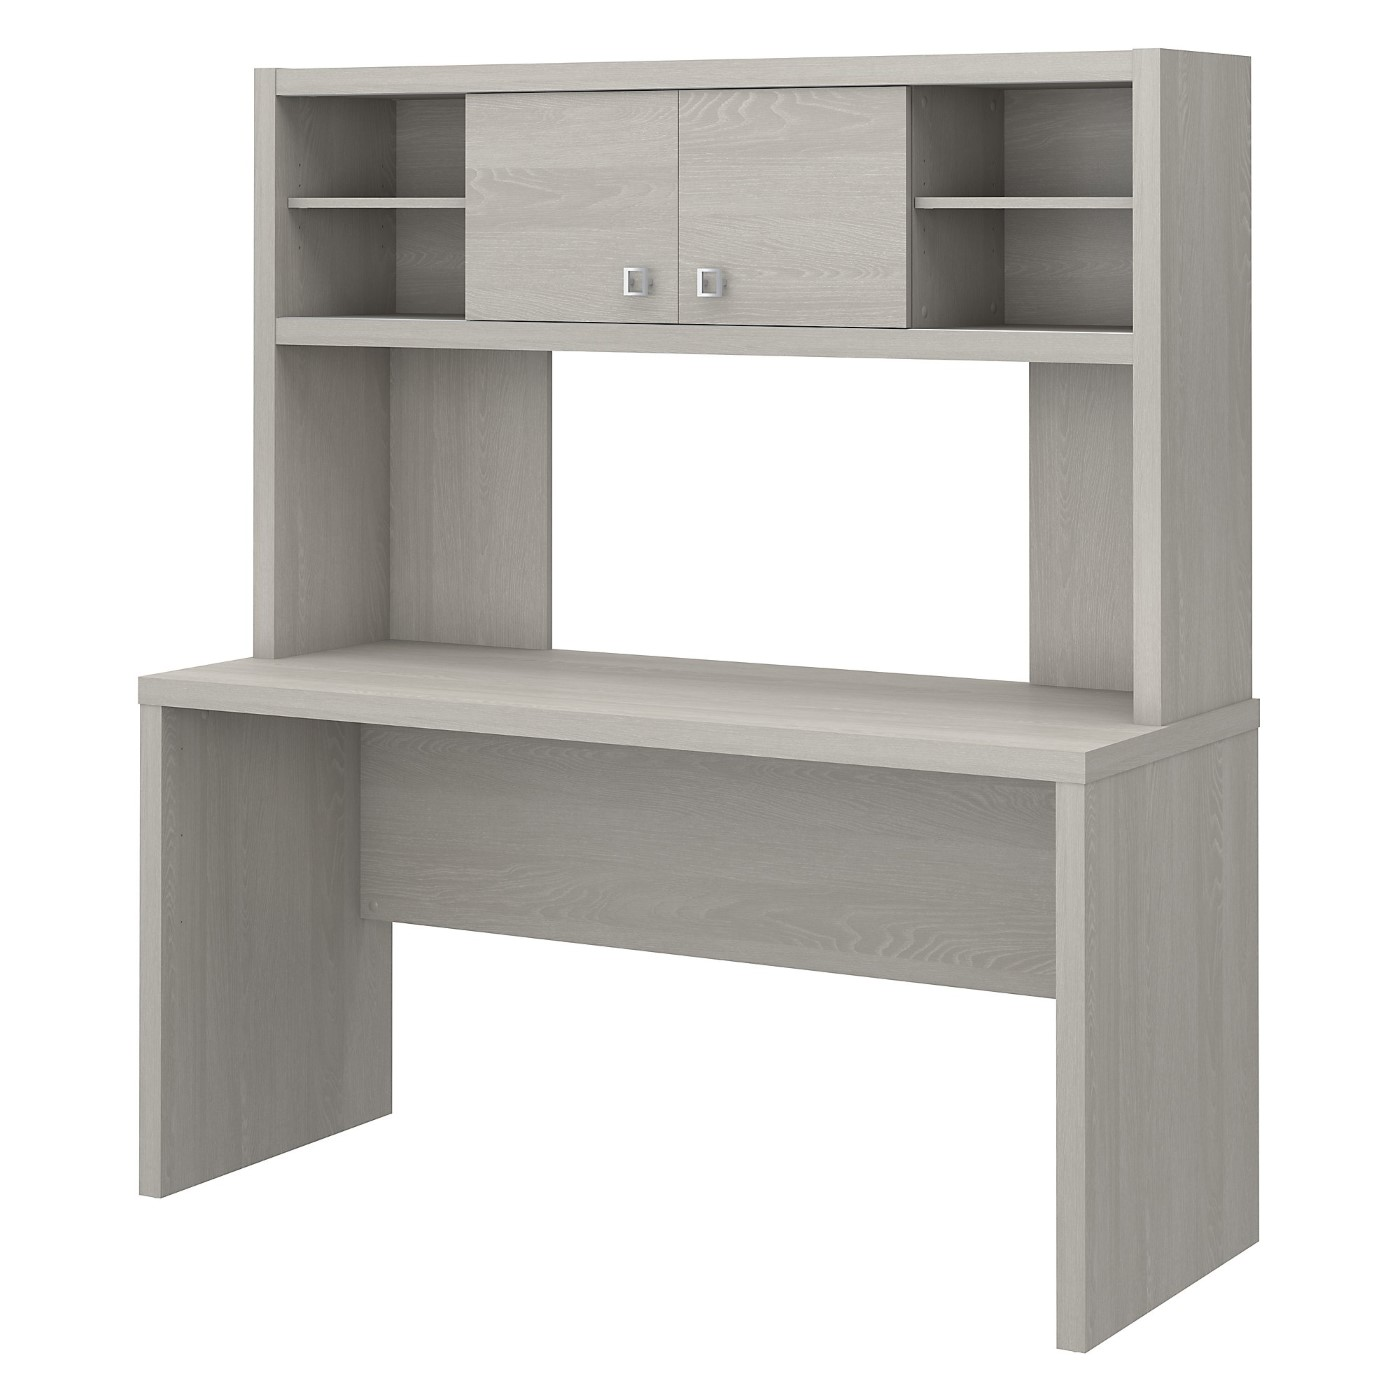 The kathy ireland� Echo 60W Credenza Desk with Hutch is Sustainable Eco Friendly Furniture. Includes Free Shipping! 30H x 72L x 72W  VIDEO BELOW.